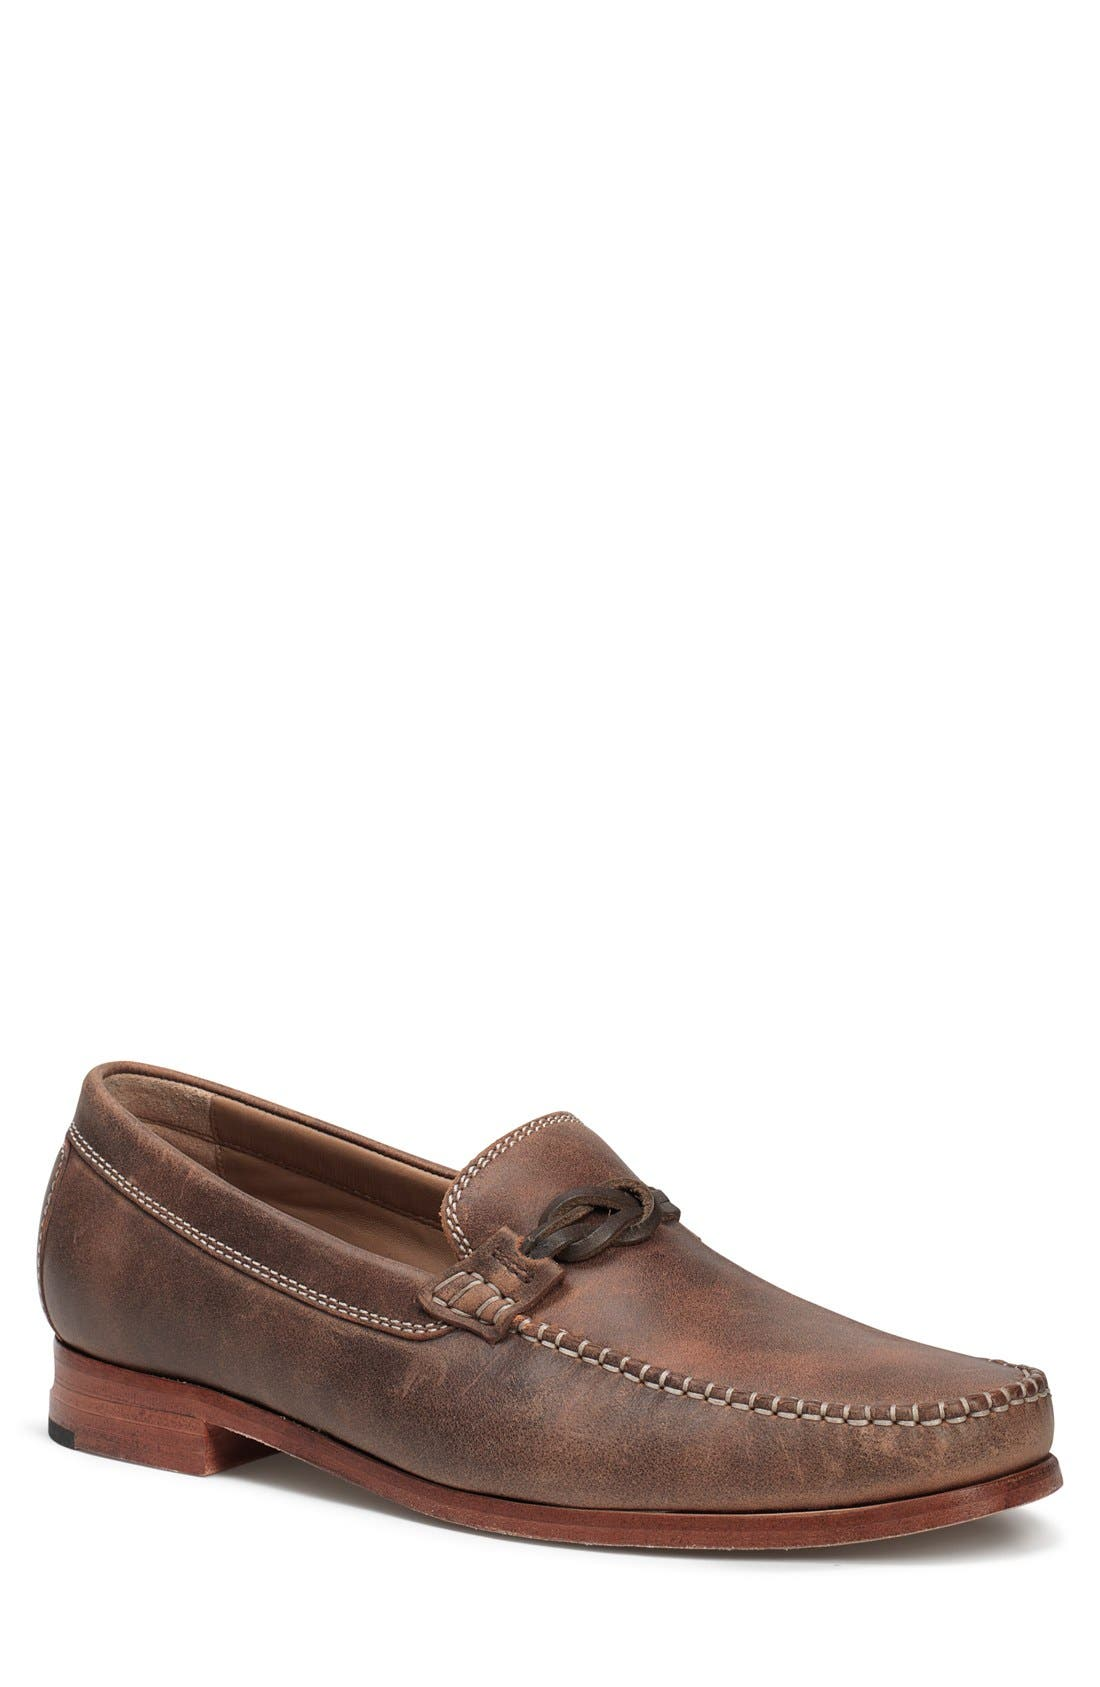 'Seth' Loafer,                             Main thumbnail 1, color,                             BROWN